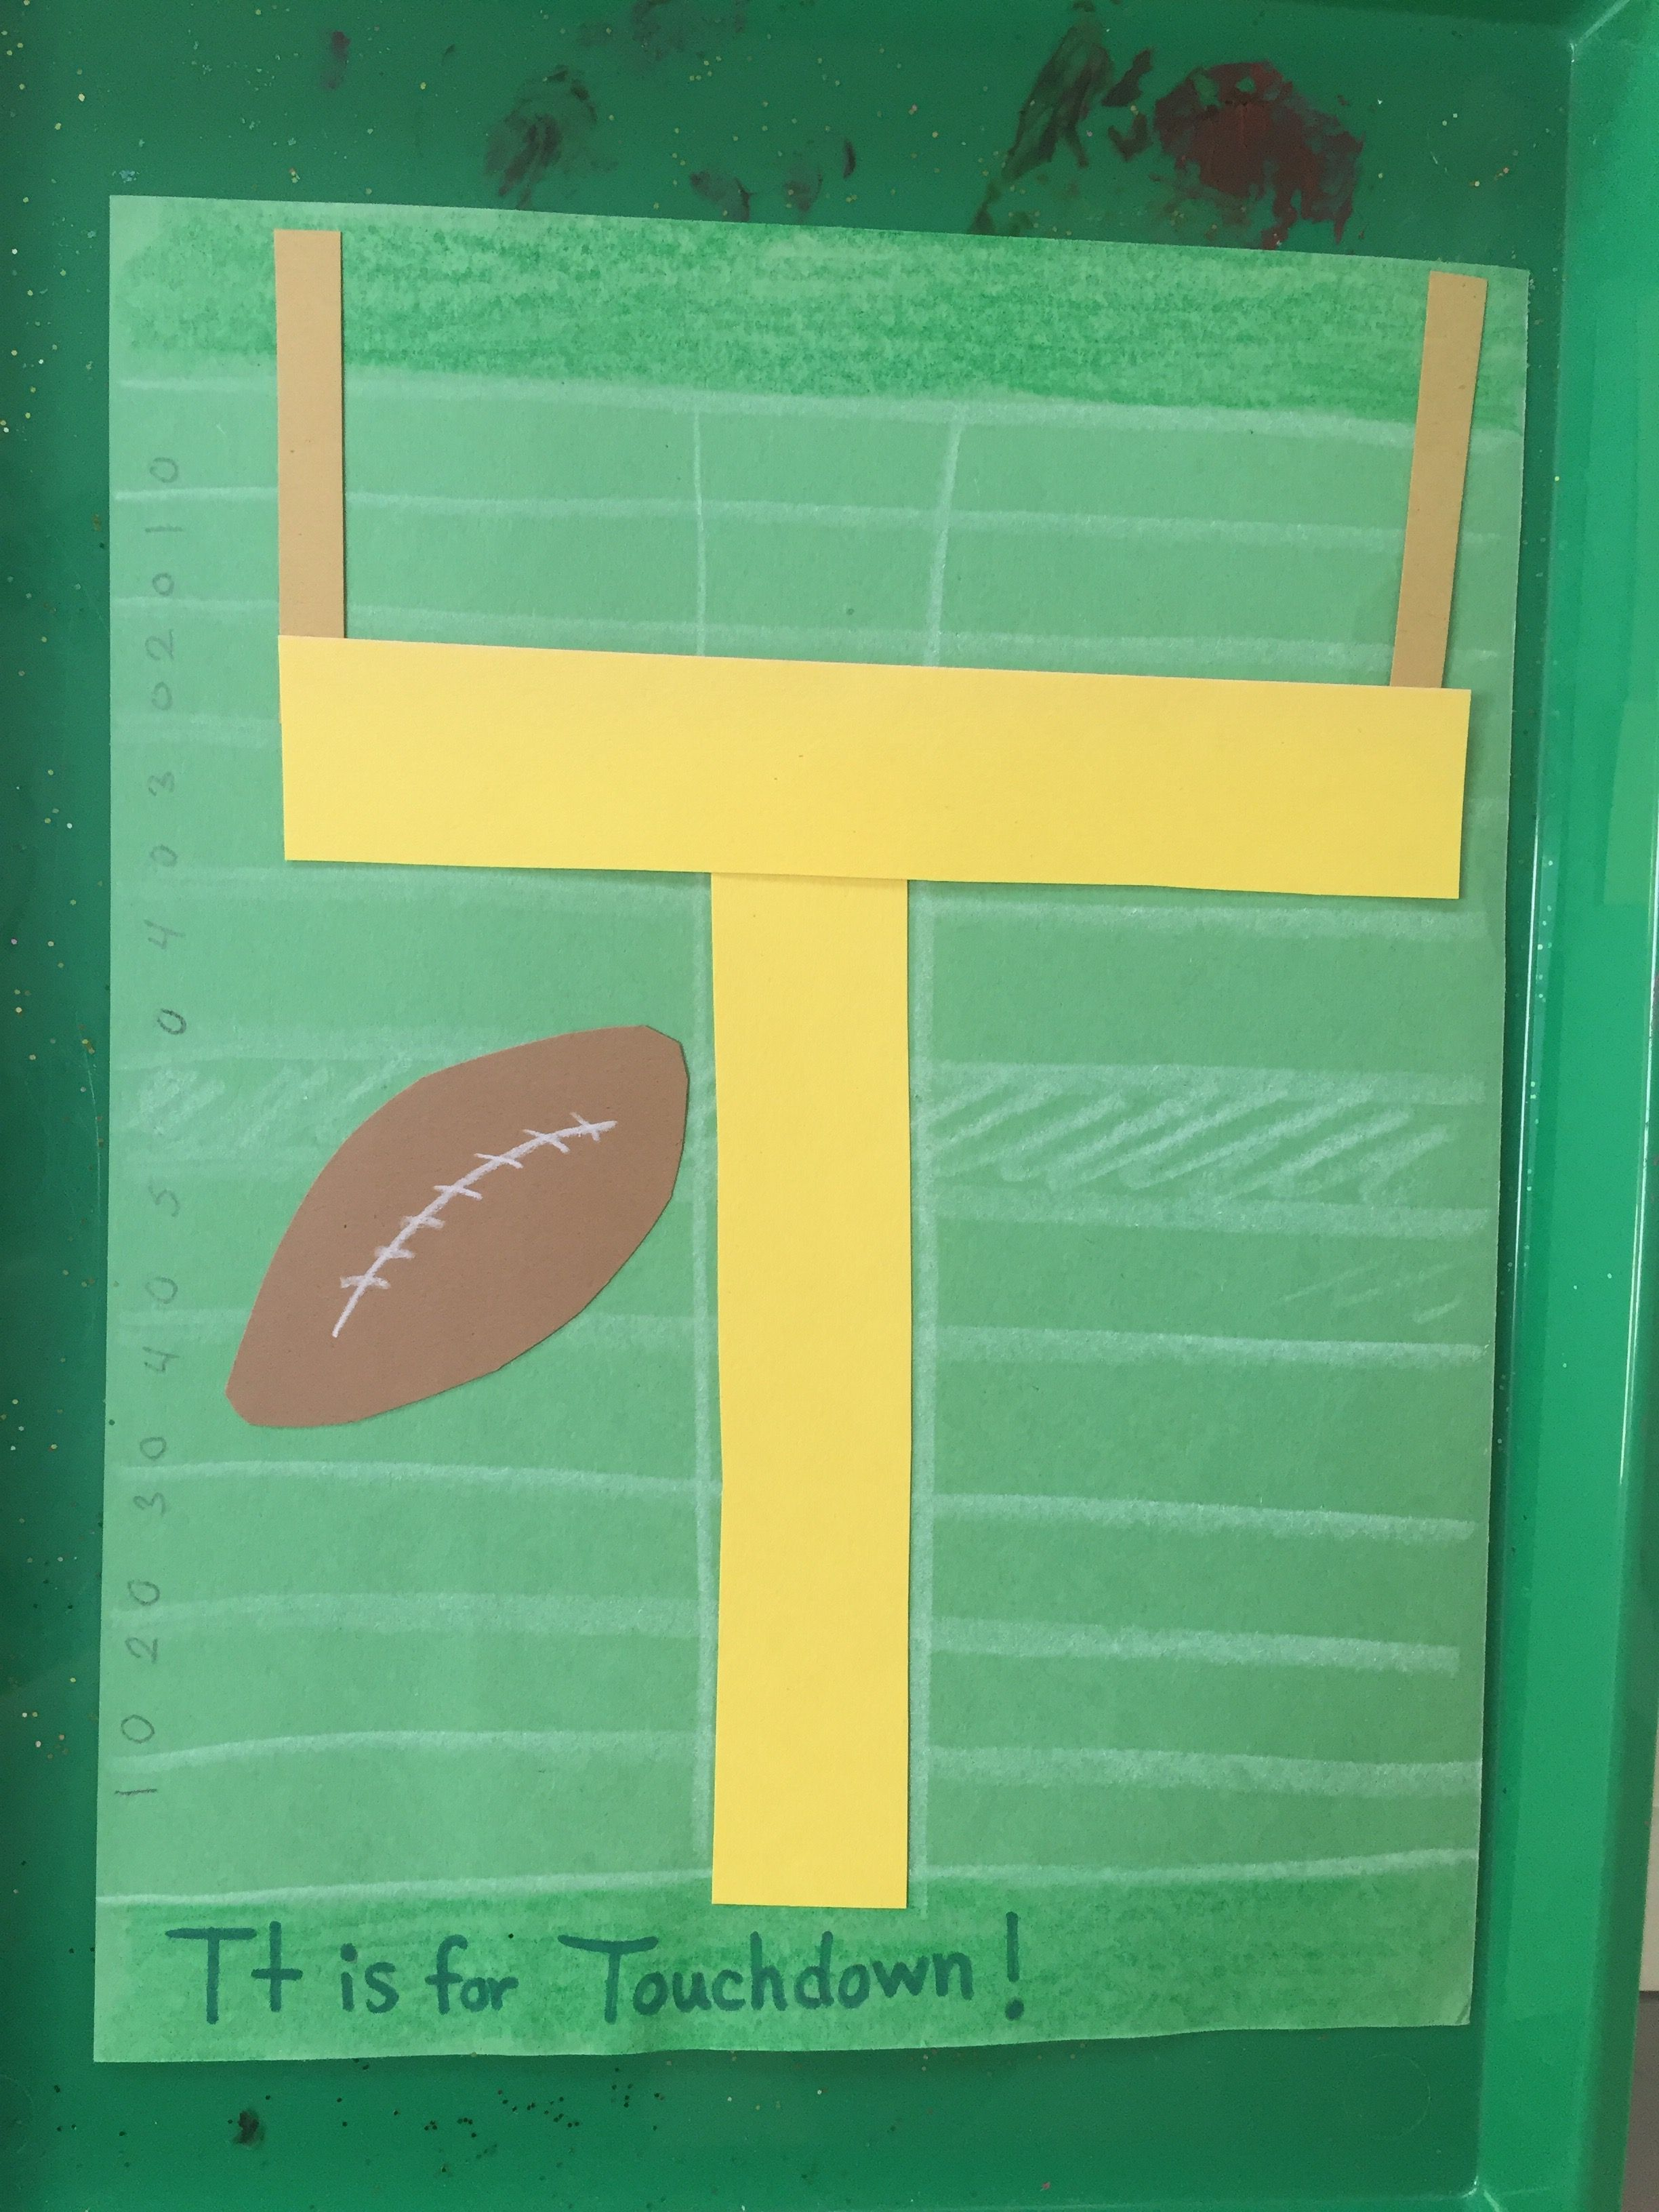 T Is For Touchdown Craft Preschool Football Theme Idea